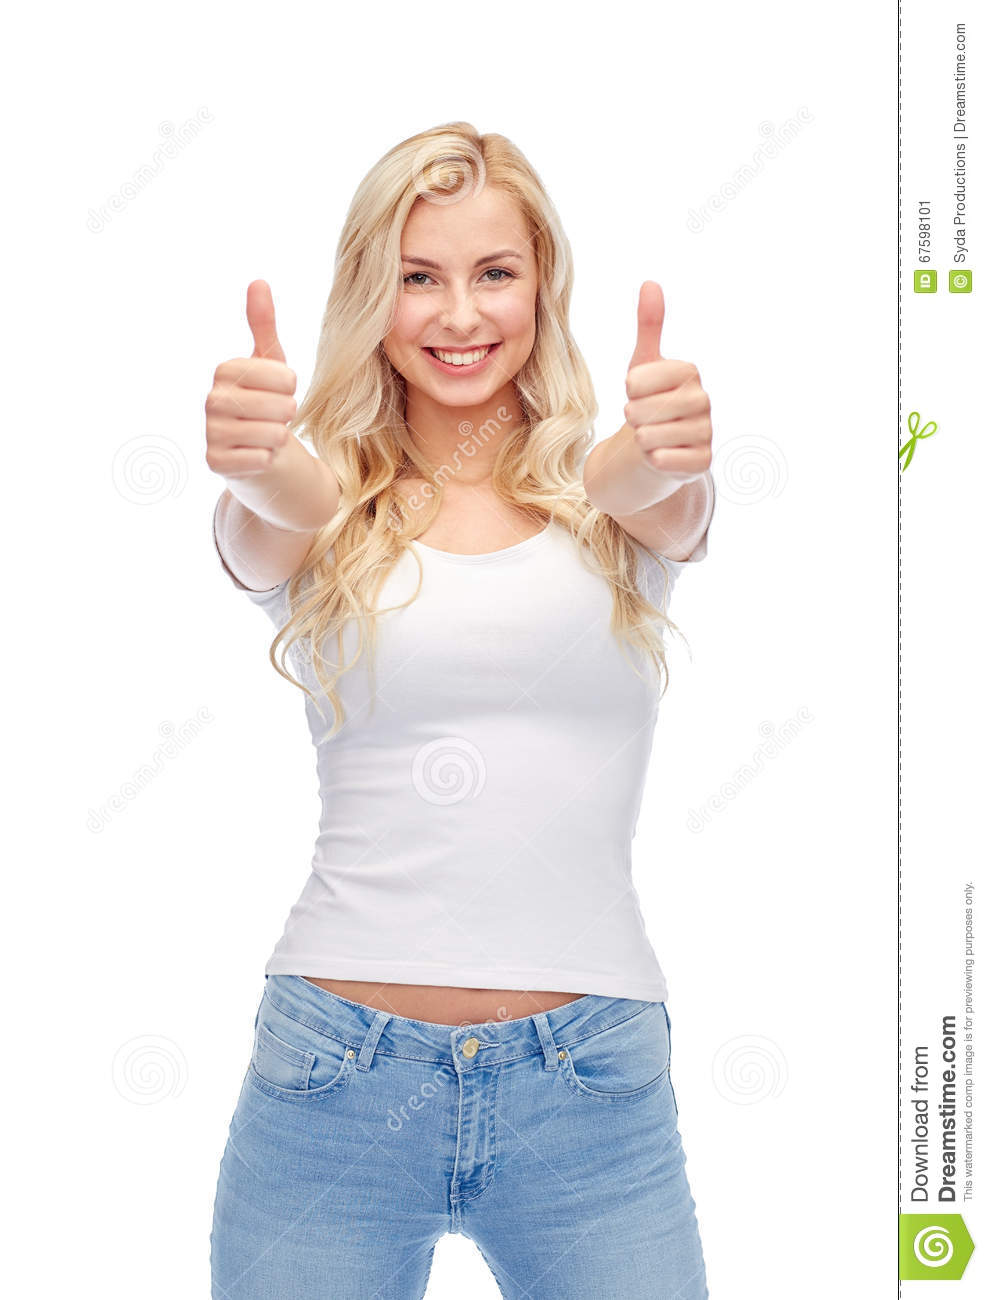 Happy young woman or teenage girl in white t-shirt